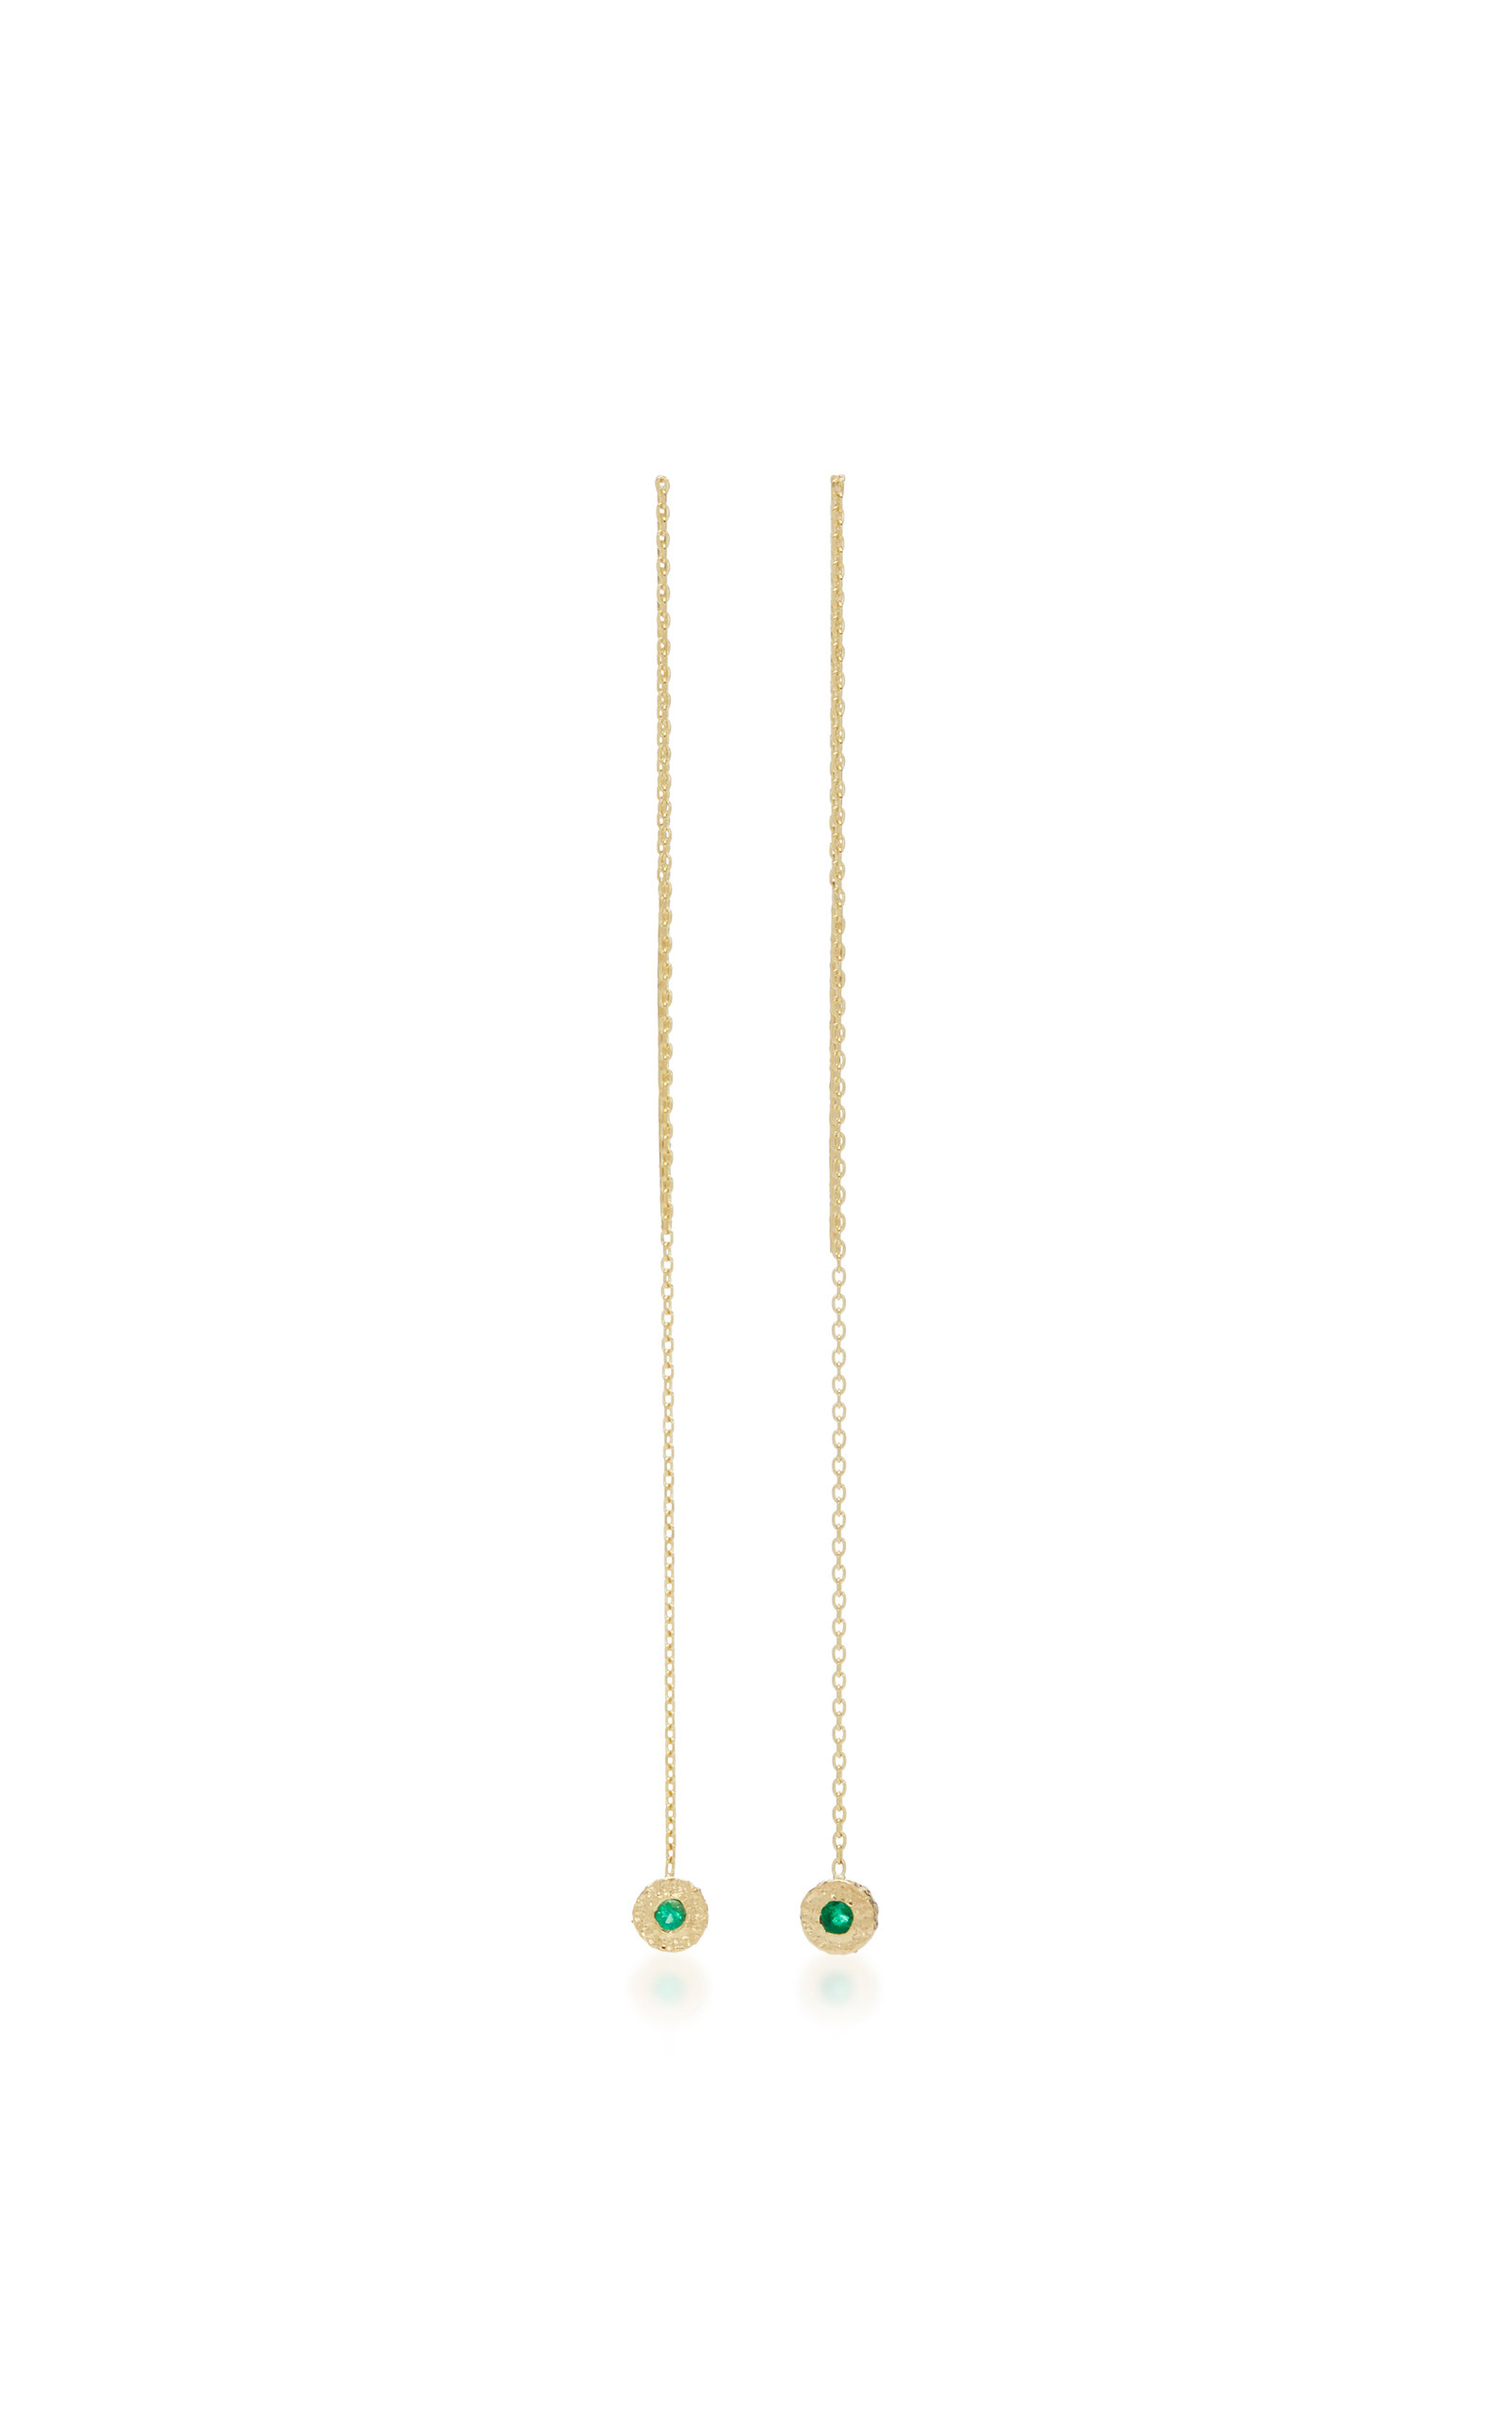 OCTAVIA ELIZABETH 18K GOLD EMERALD EARRINGS